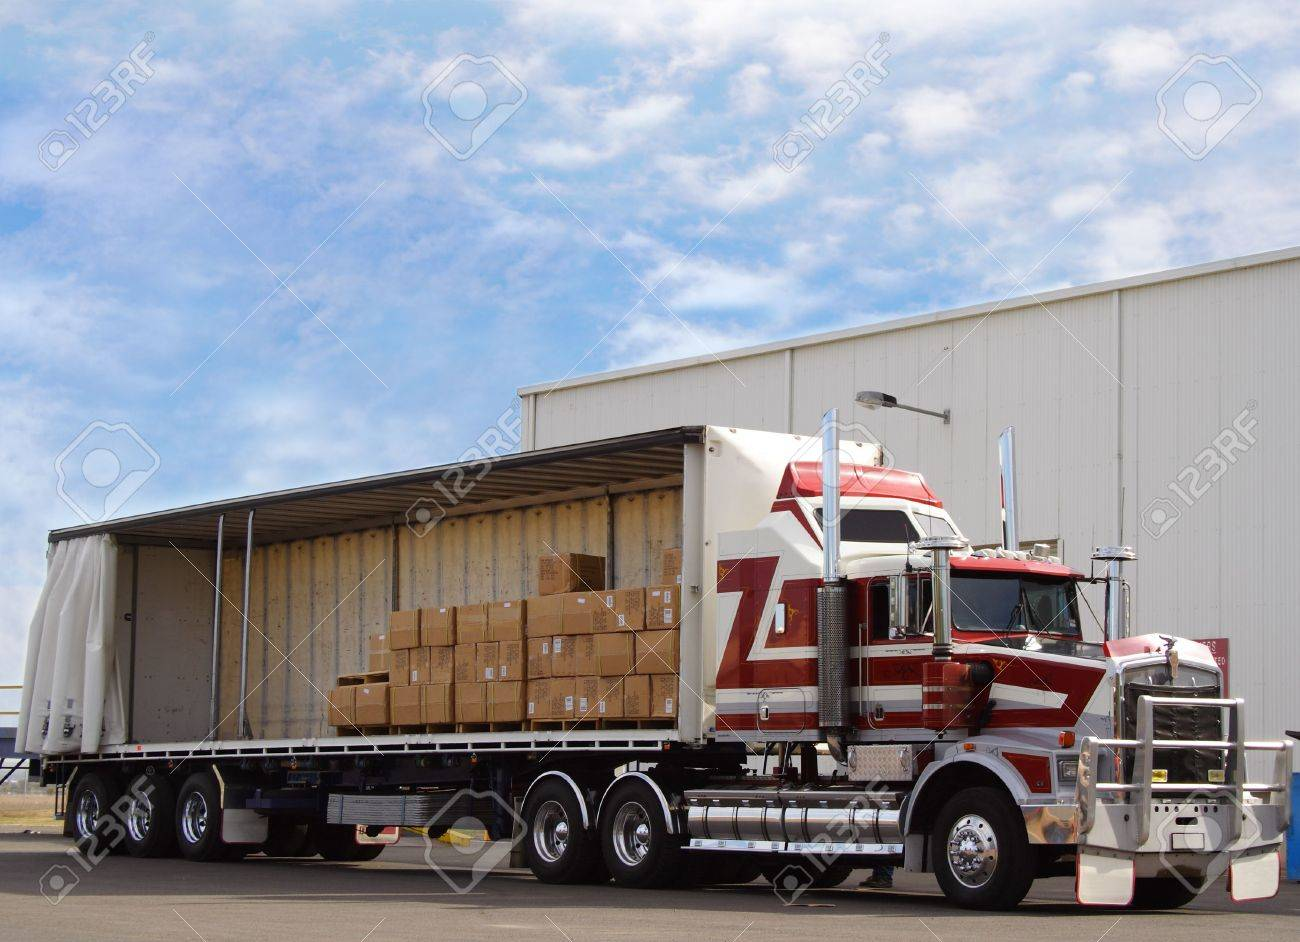 Truck with cargo - 645275